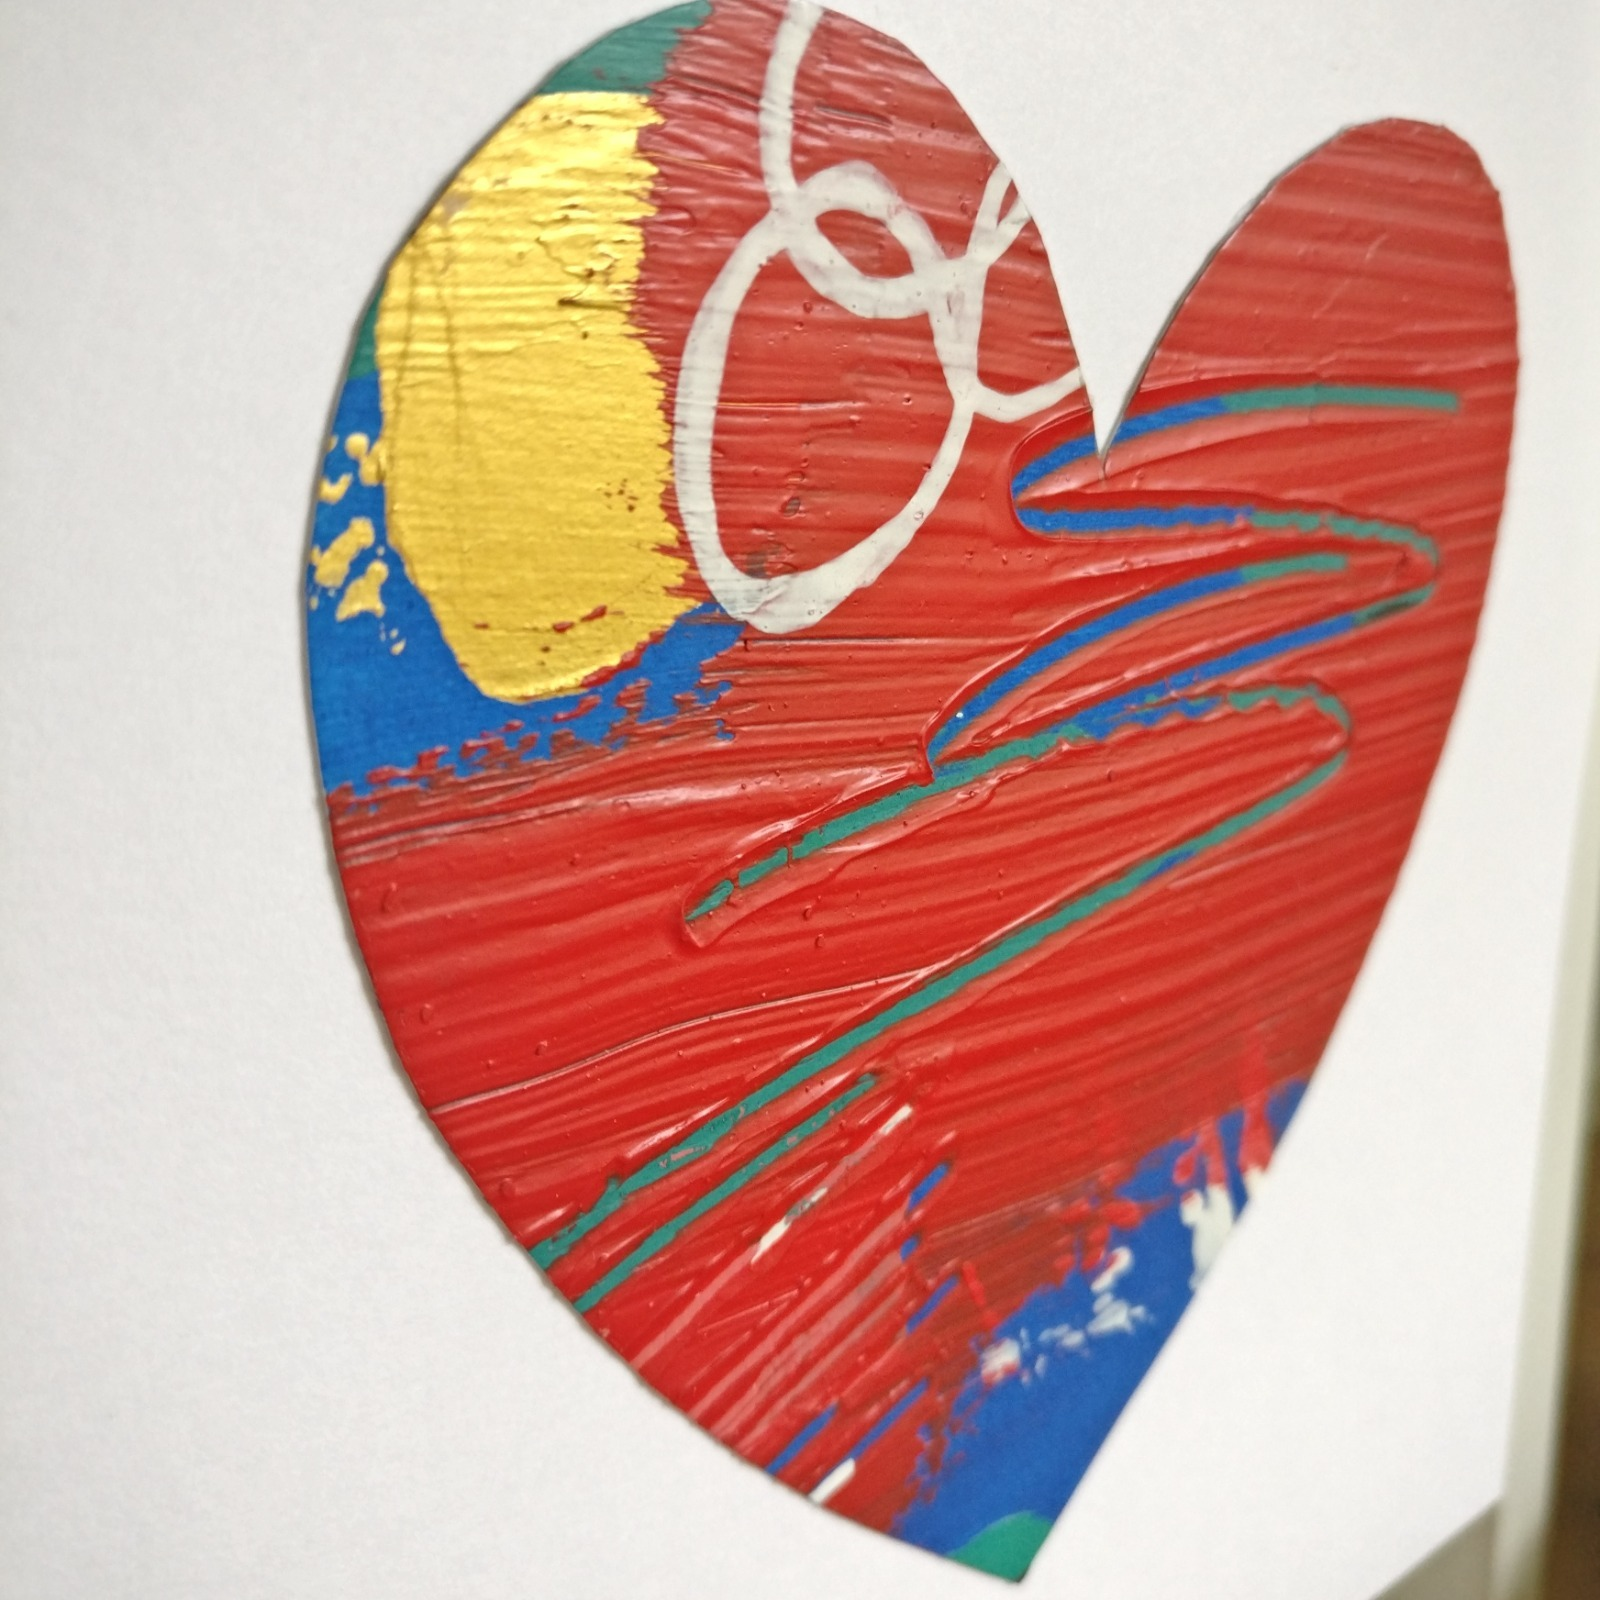 Abstract colour heart framed painting - 2 of 6